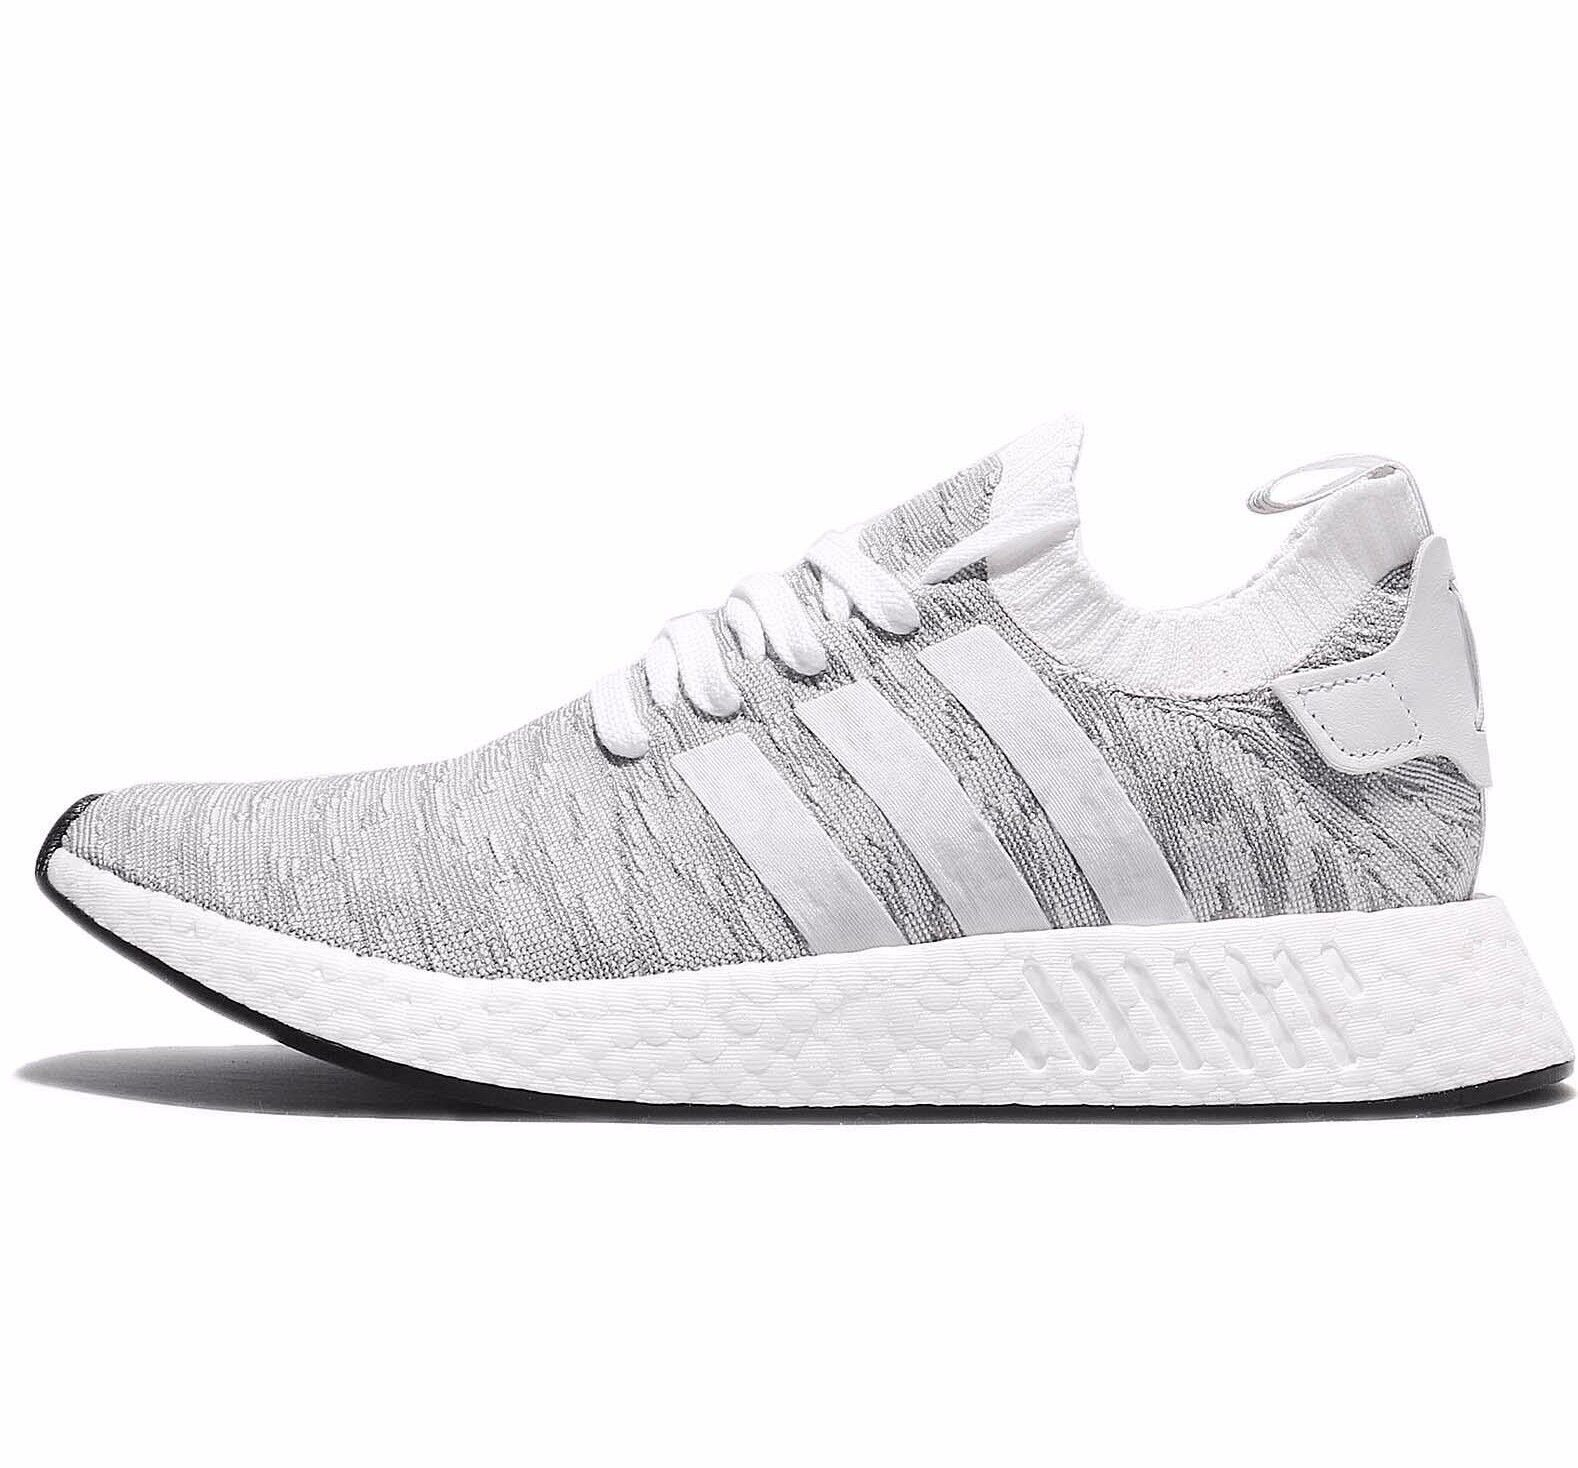 ADIDAS NMD R2 NMD_R2 PRIMEKNIT - WHITE/ gris / Noir /ORANGE - BY9410 -7, 10, 11